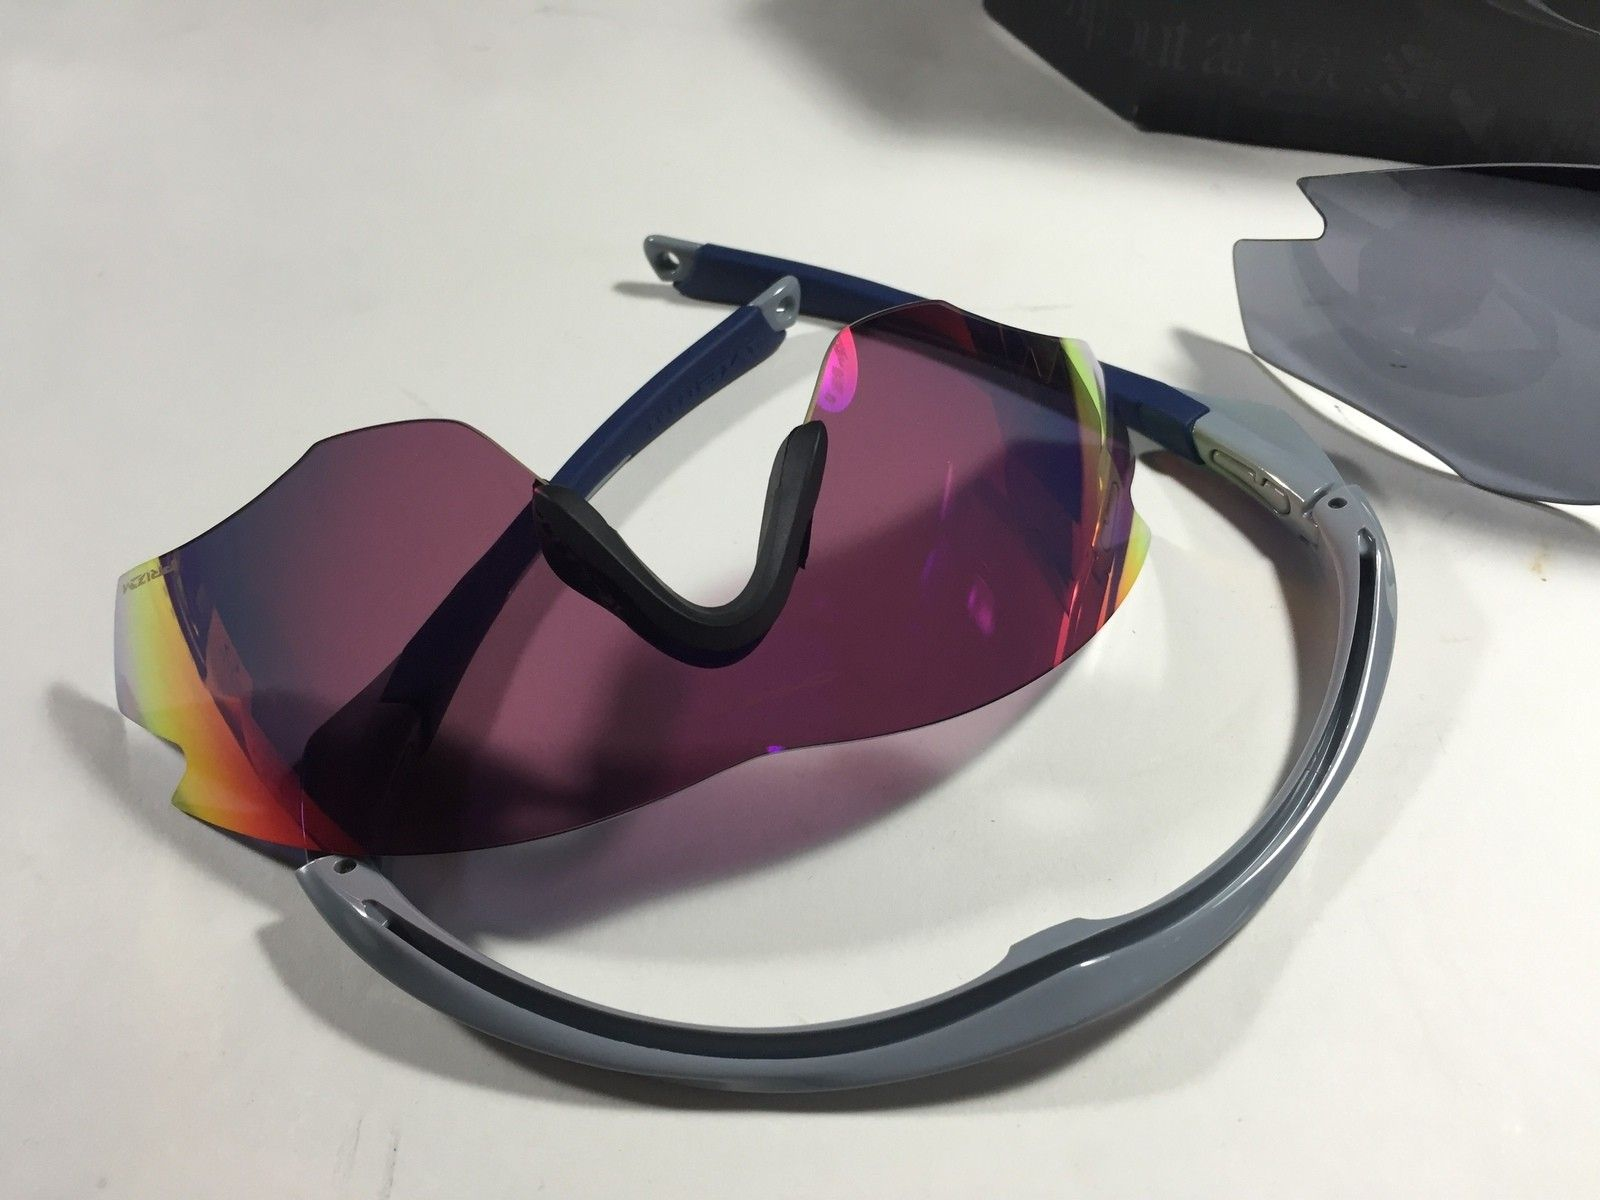 Purchased M2 with prizm road lens - IMG_0910.JPG